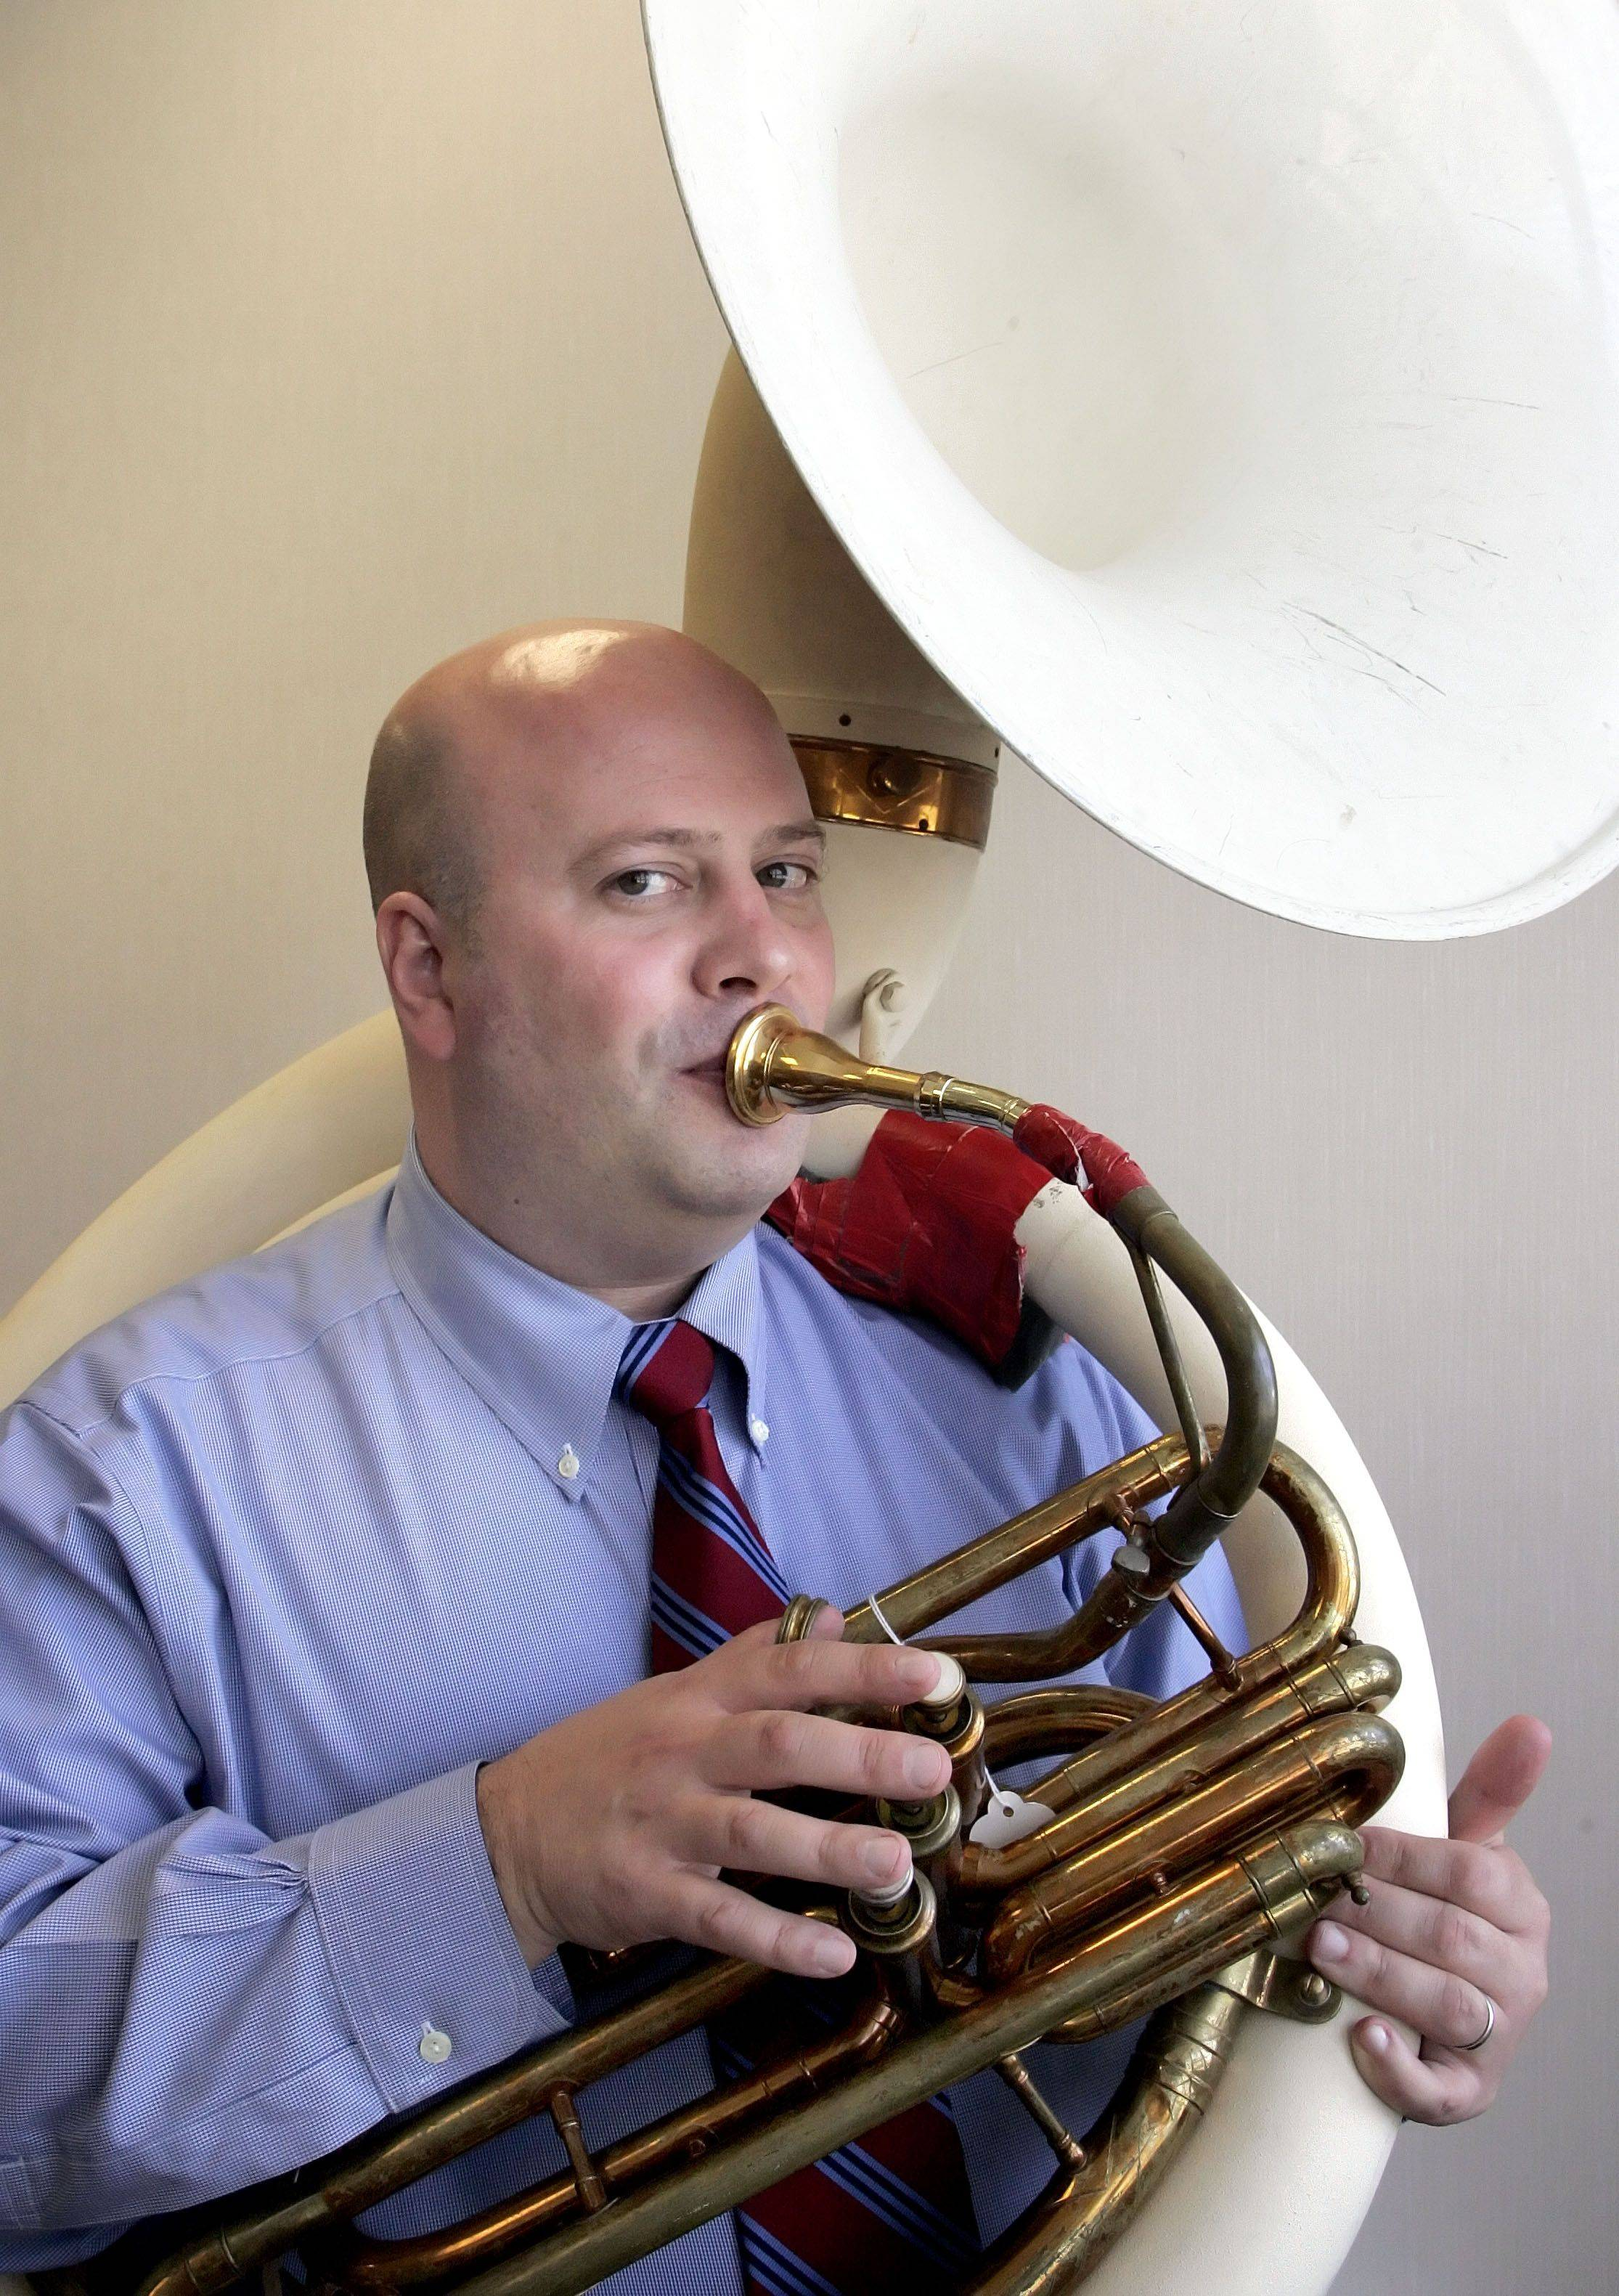 Adler Park School Principal Jon Bogie brings his love of music to the role of school principal.